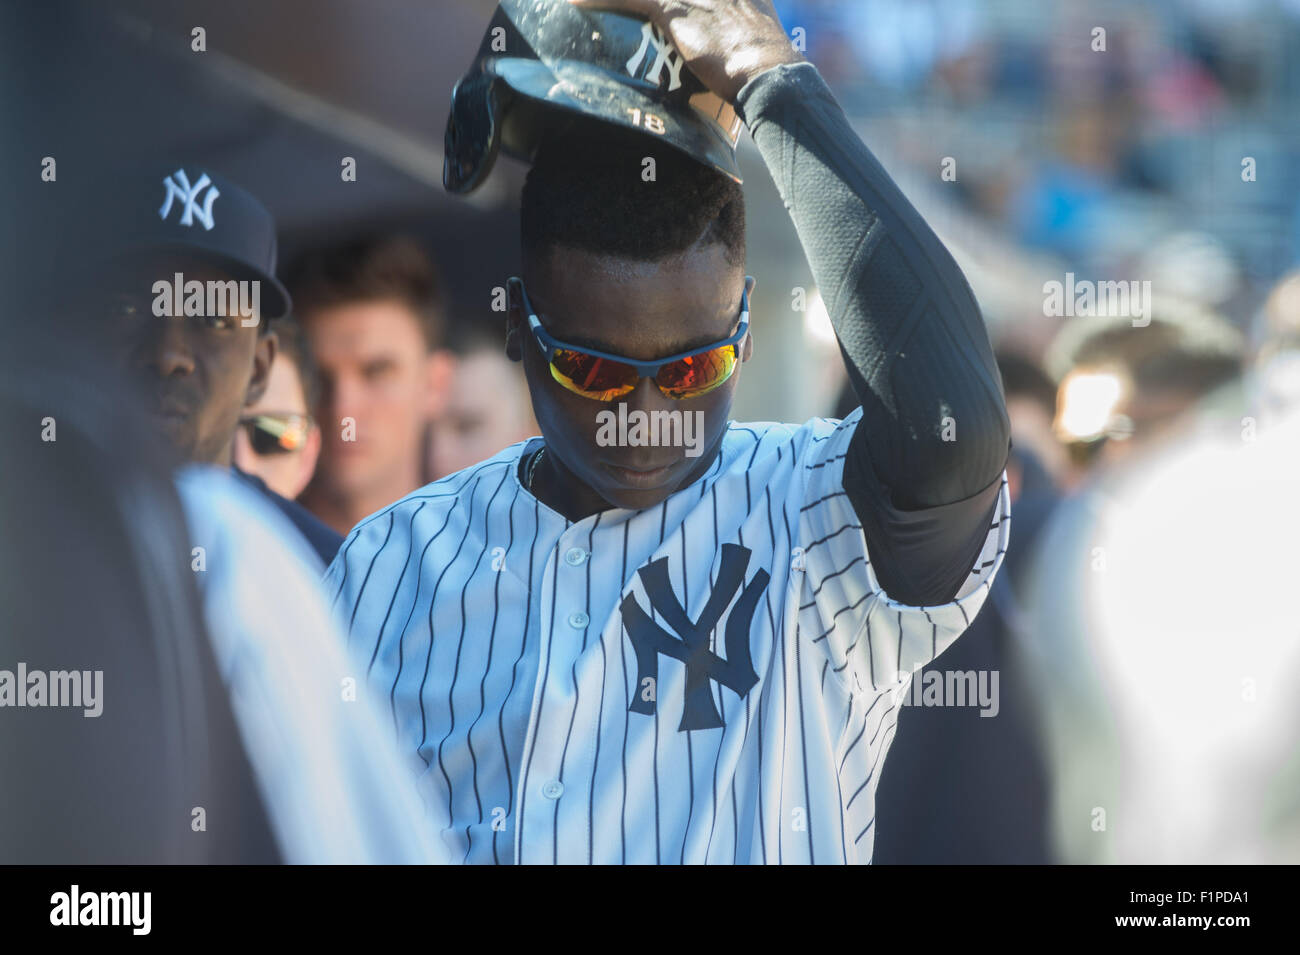 New York, New York, USA. 5th Sep, 2015. Yankees' DIDI GREGORIUS in the dugout as he hits a one-run double in - Stock Image